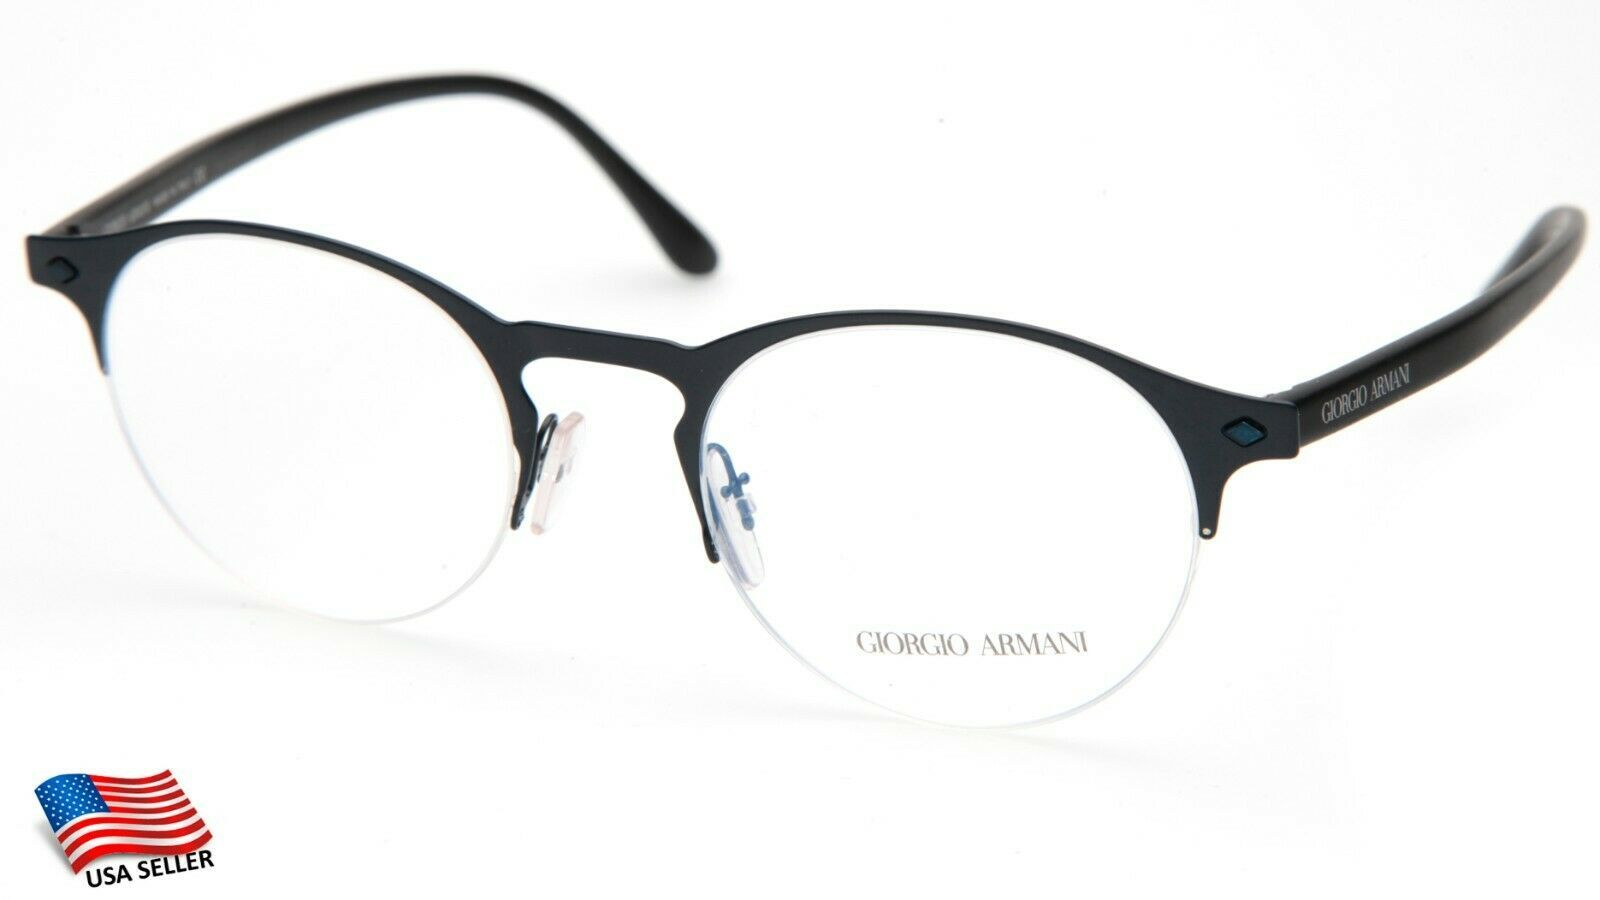 Primary image for NEW GIORGIO ARMANI AR 5064 3171 BLUE EYEGLASSES FRAME A5064 49-20-150mm Italy